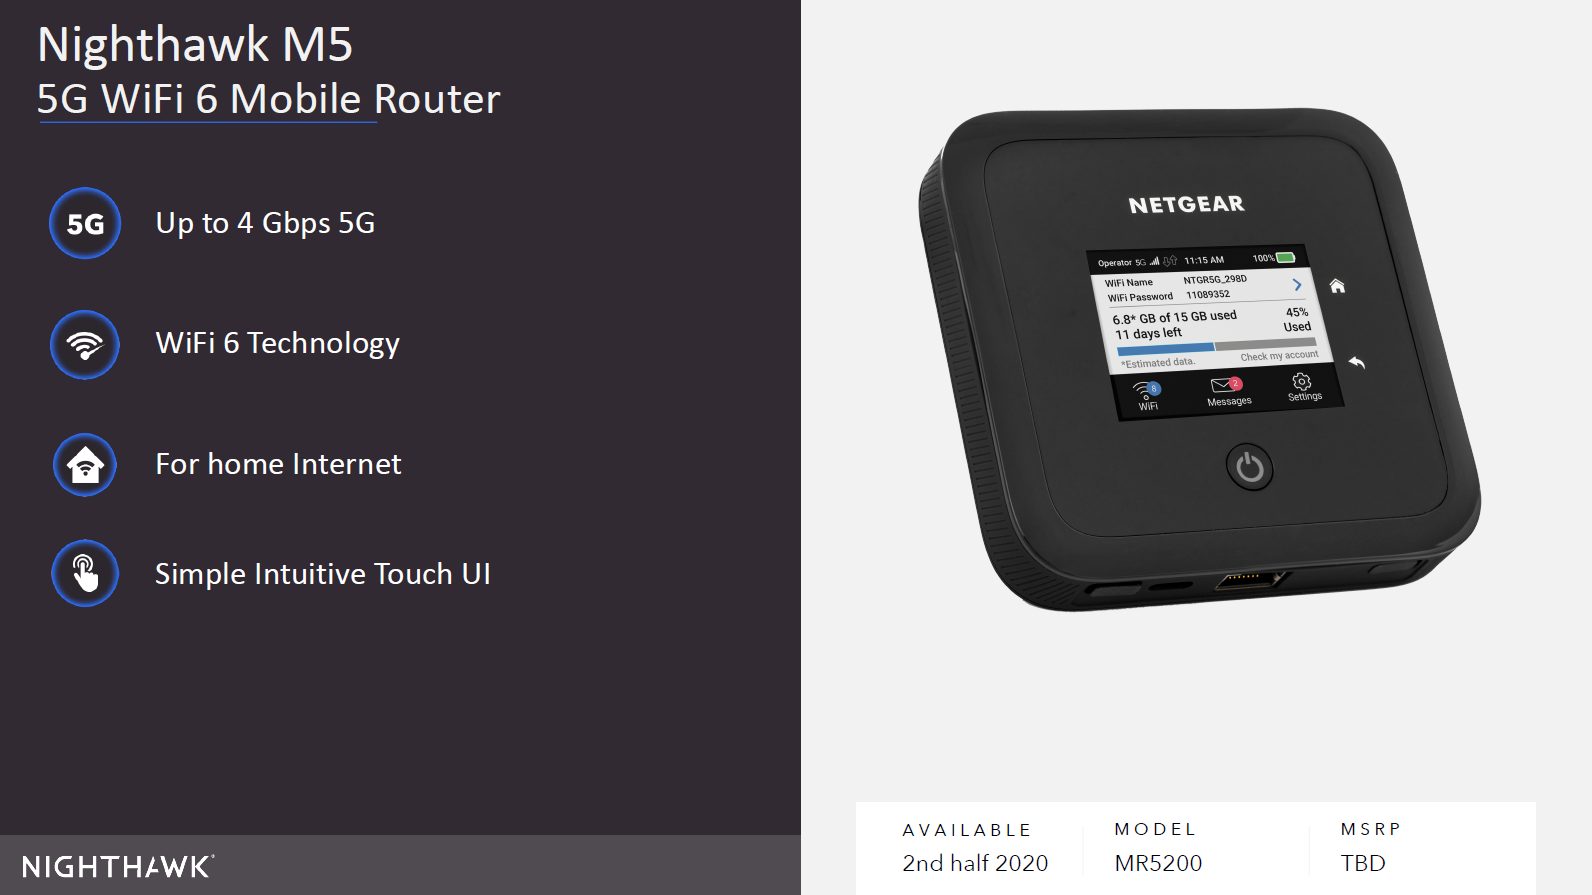 NETGEAR announces Nighthawk Mesh WiFI system with Wi-Fi 6 support